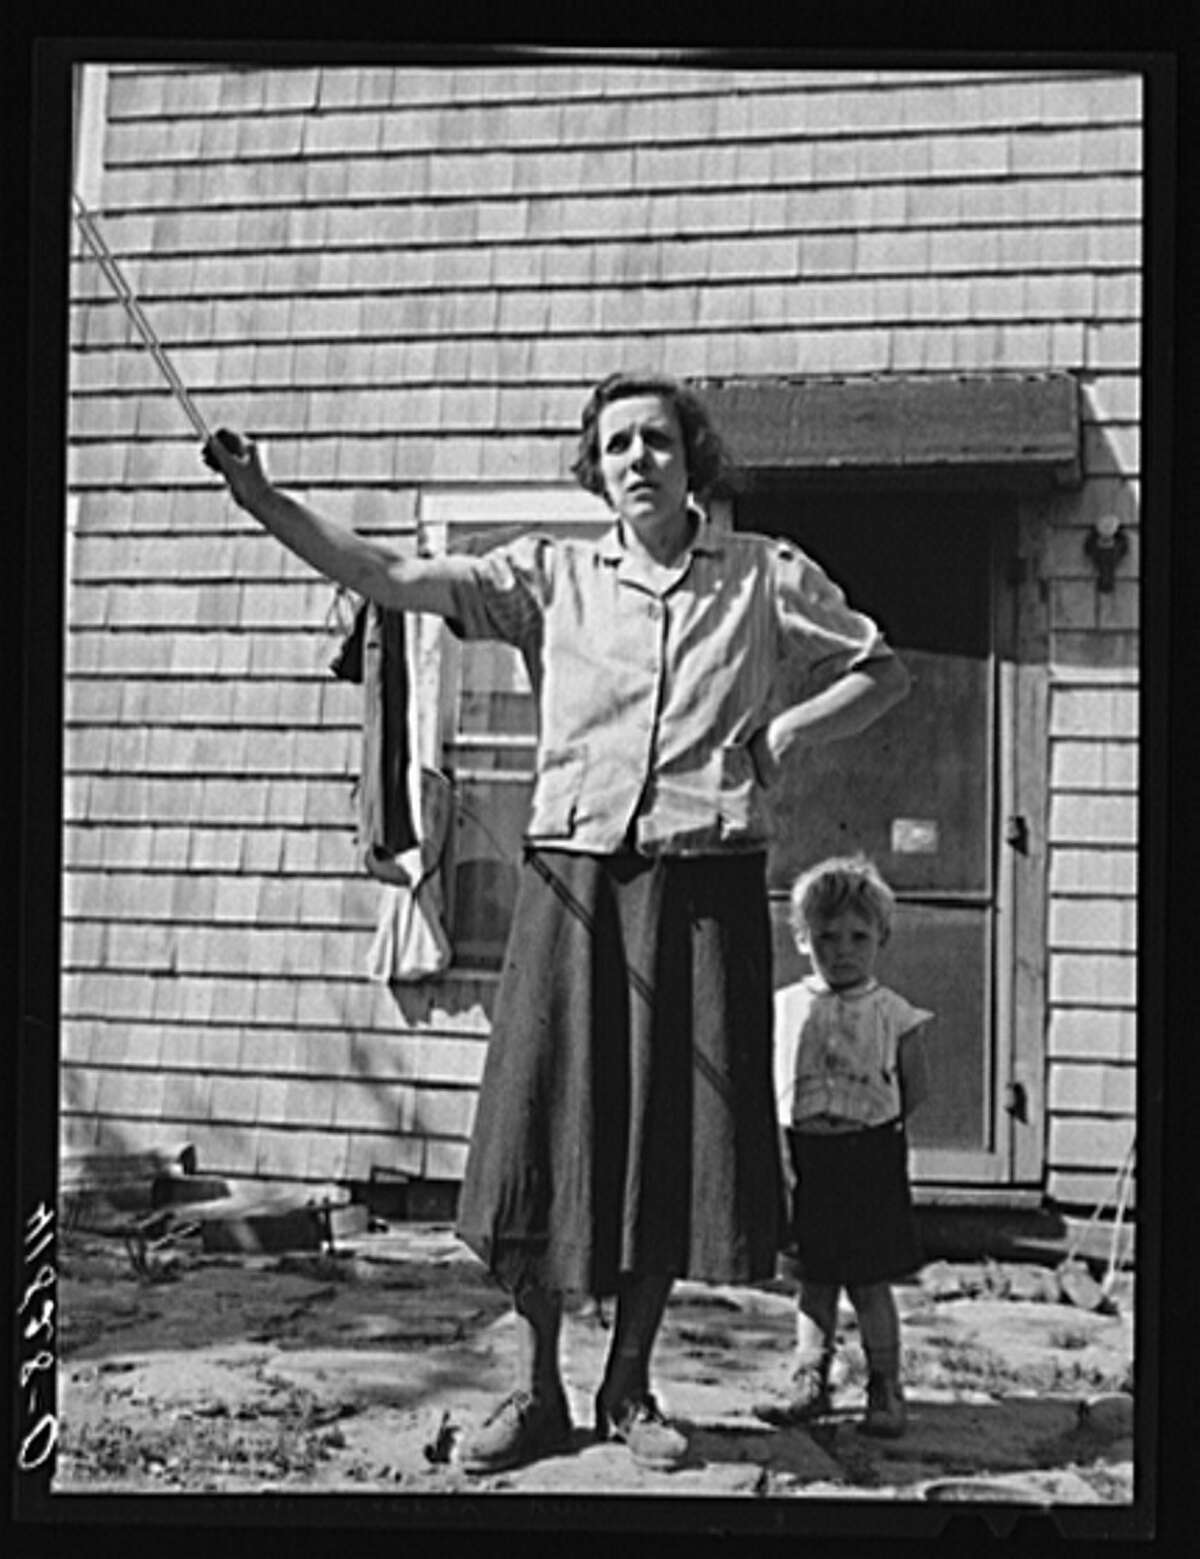 October 1940. Mrs. Thomas Festa and one of her children. FSA (Farm Security Administration) client, Italian, on the back porch of her house two miles out of Newtown, Connecticut